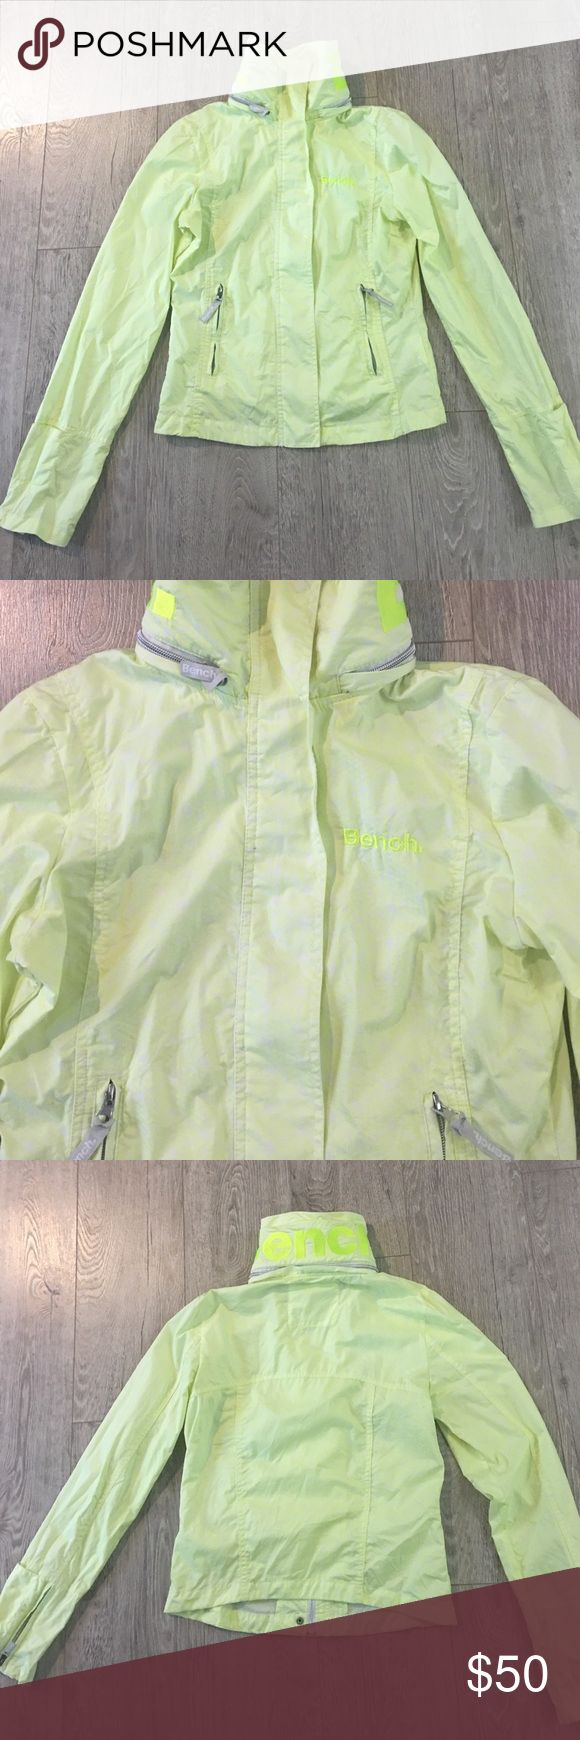 Bench jacket Bright yellow Bench windbreaker type jacket. Says bench on front and on the back of collar. There is a hood that rolls into the color of you are not wanting to use it. Super condition. Size small. Bench Jackets & Coats